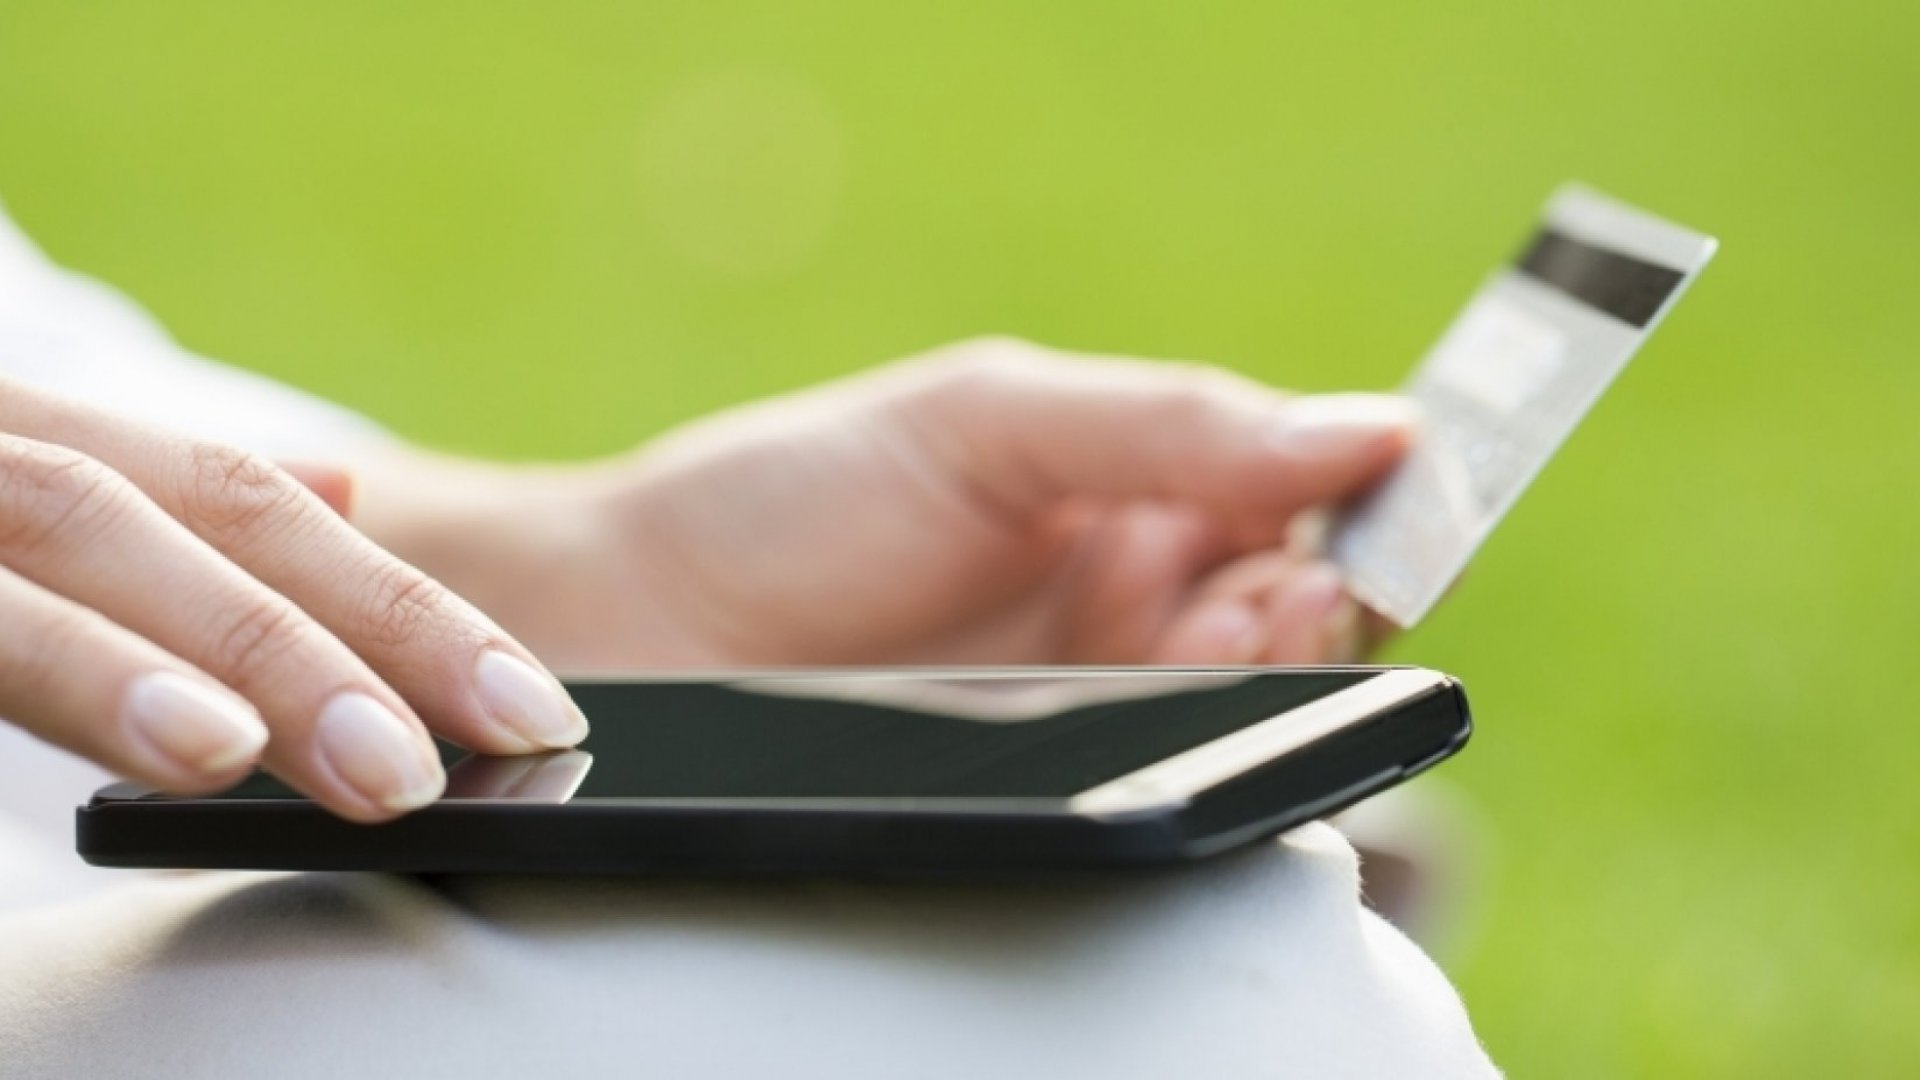 5 Dos & Don'ts For a Successful Mobile Marketing Campaign